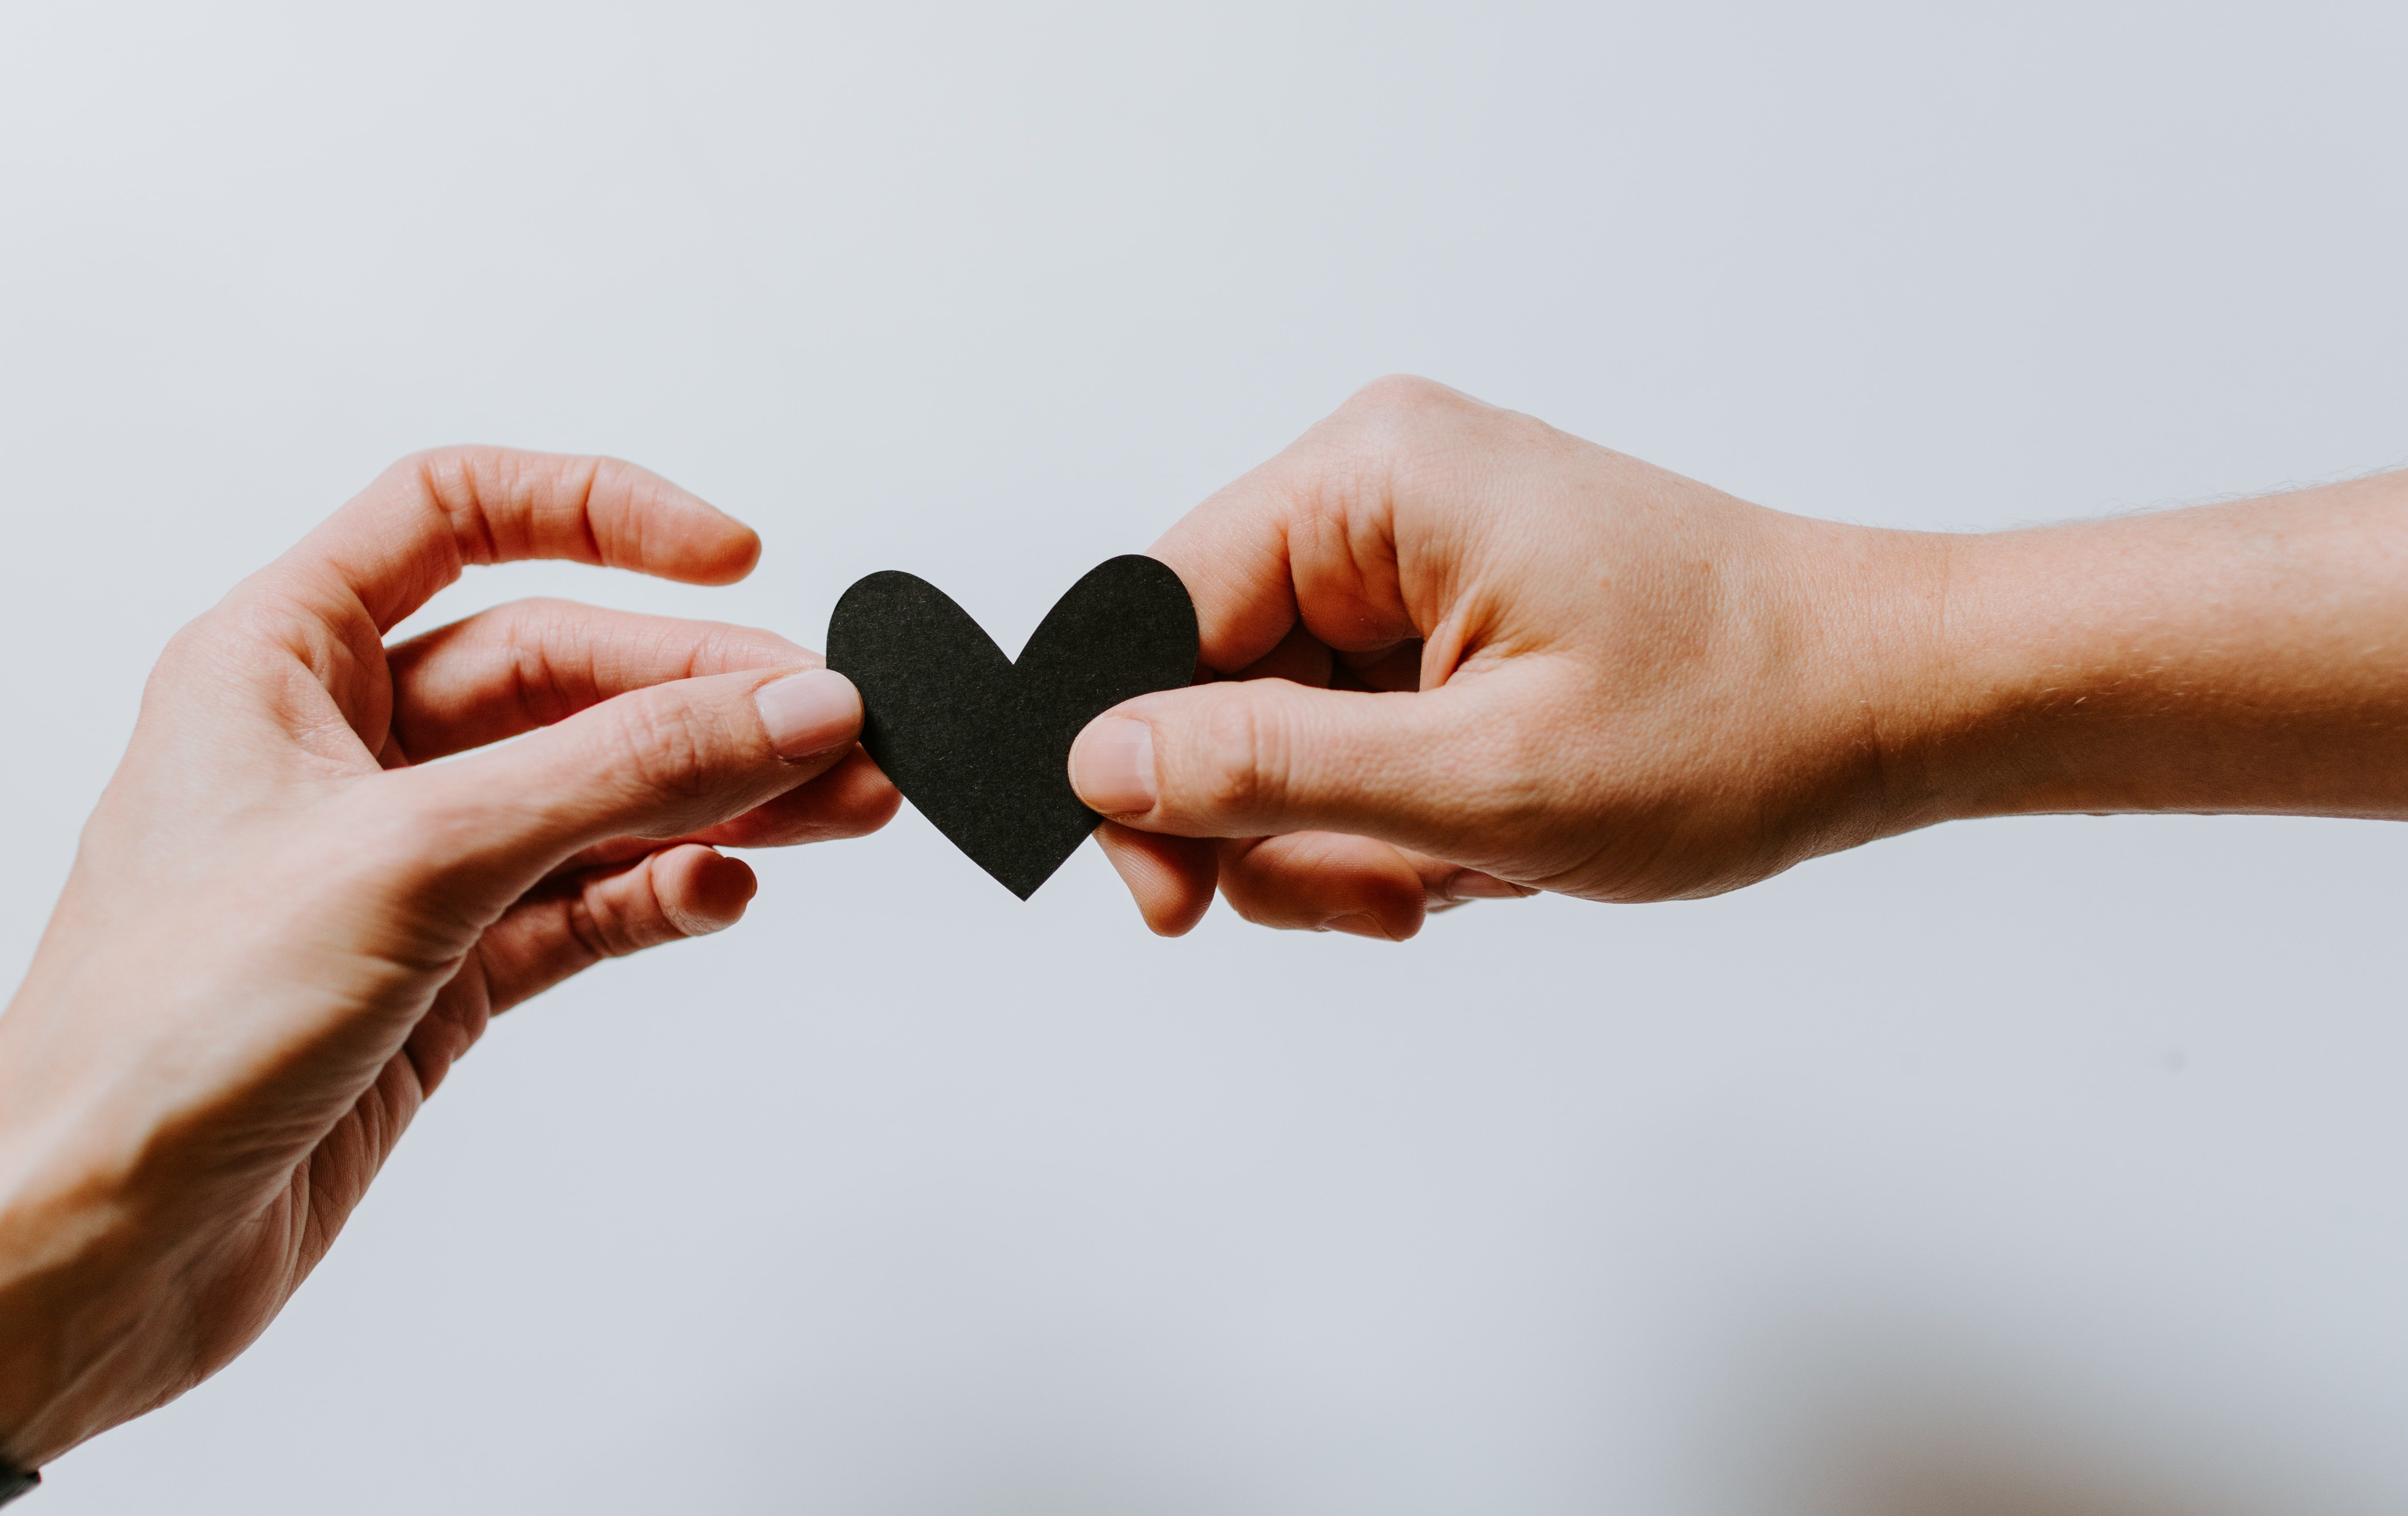 Hands holding two sides of a heart